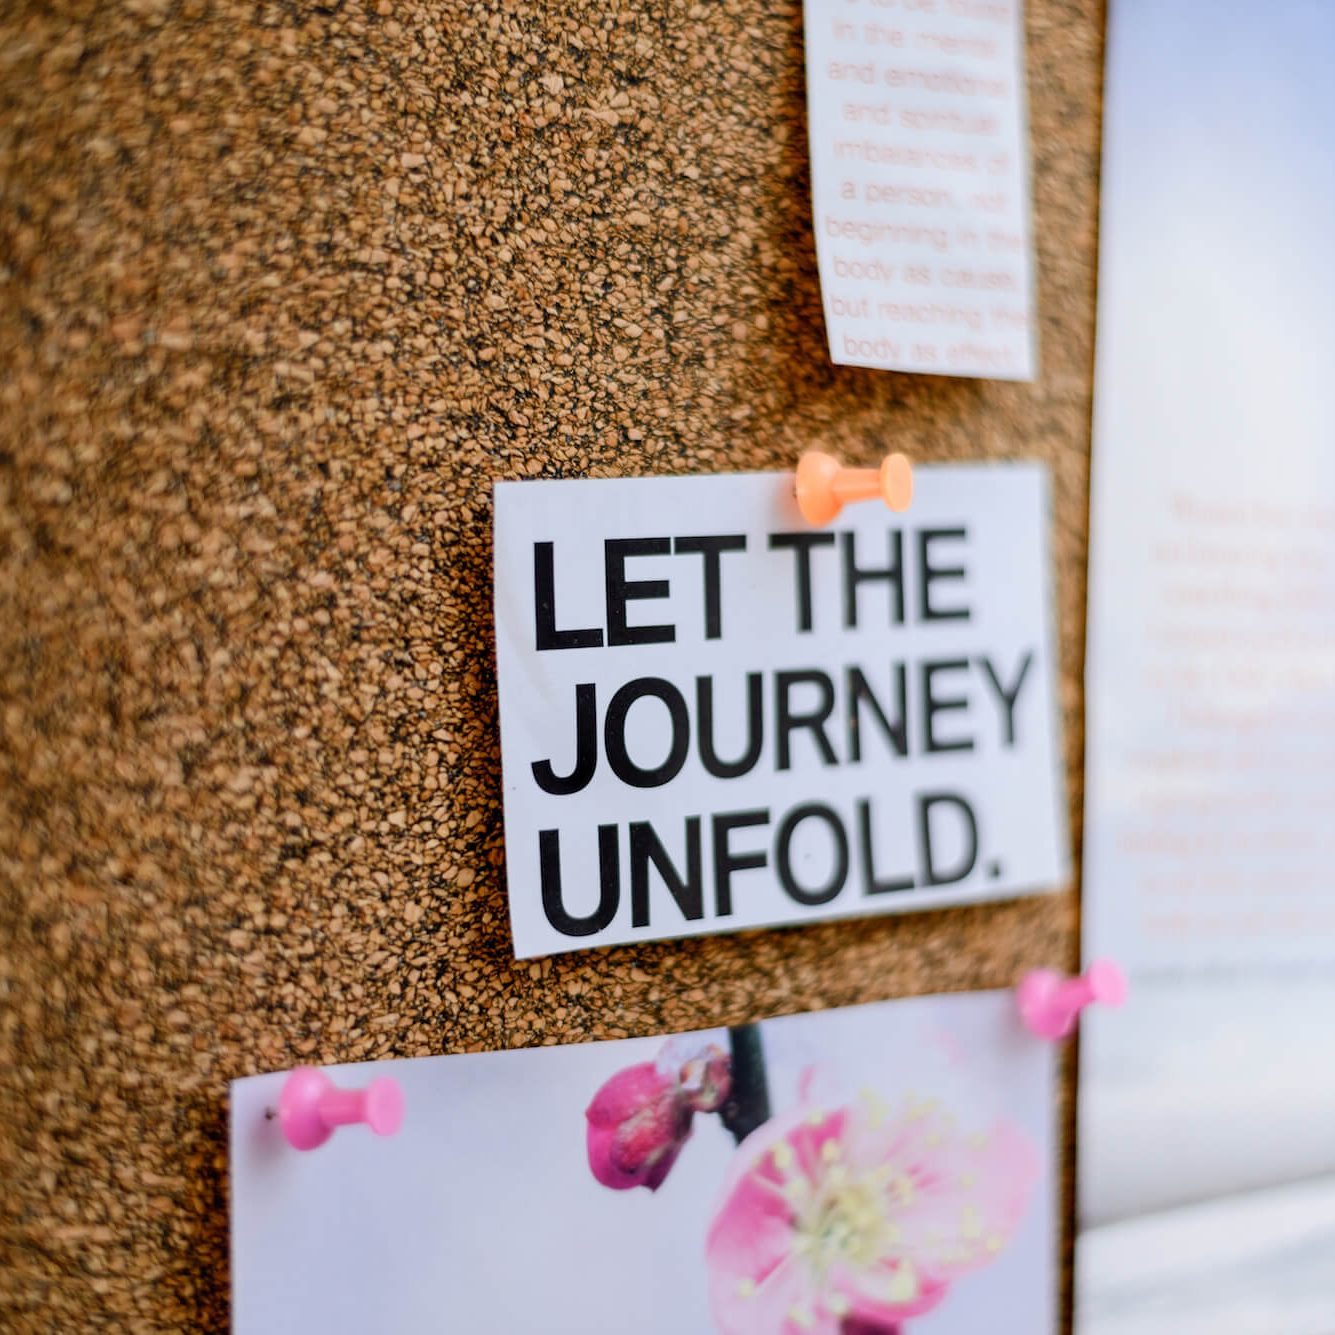 Let the Journey Unfold